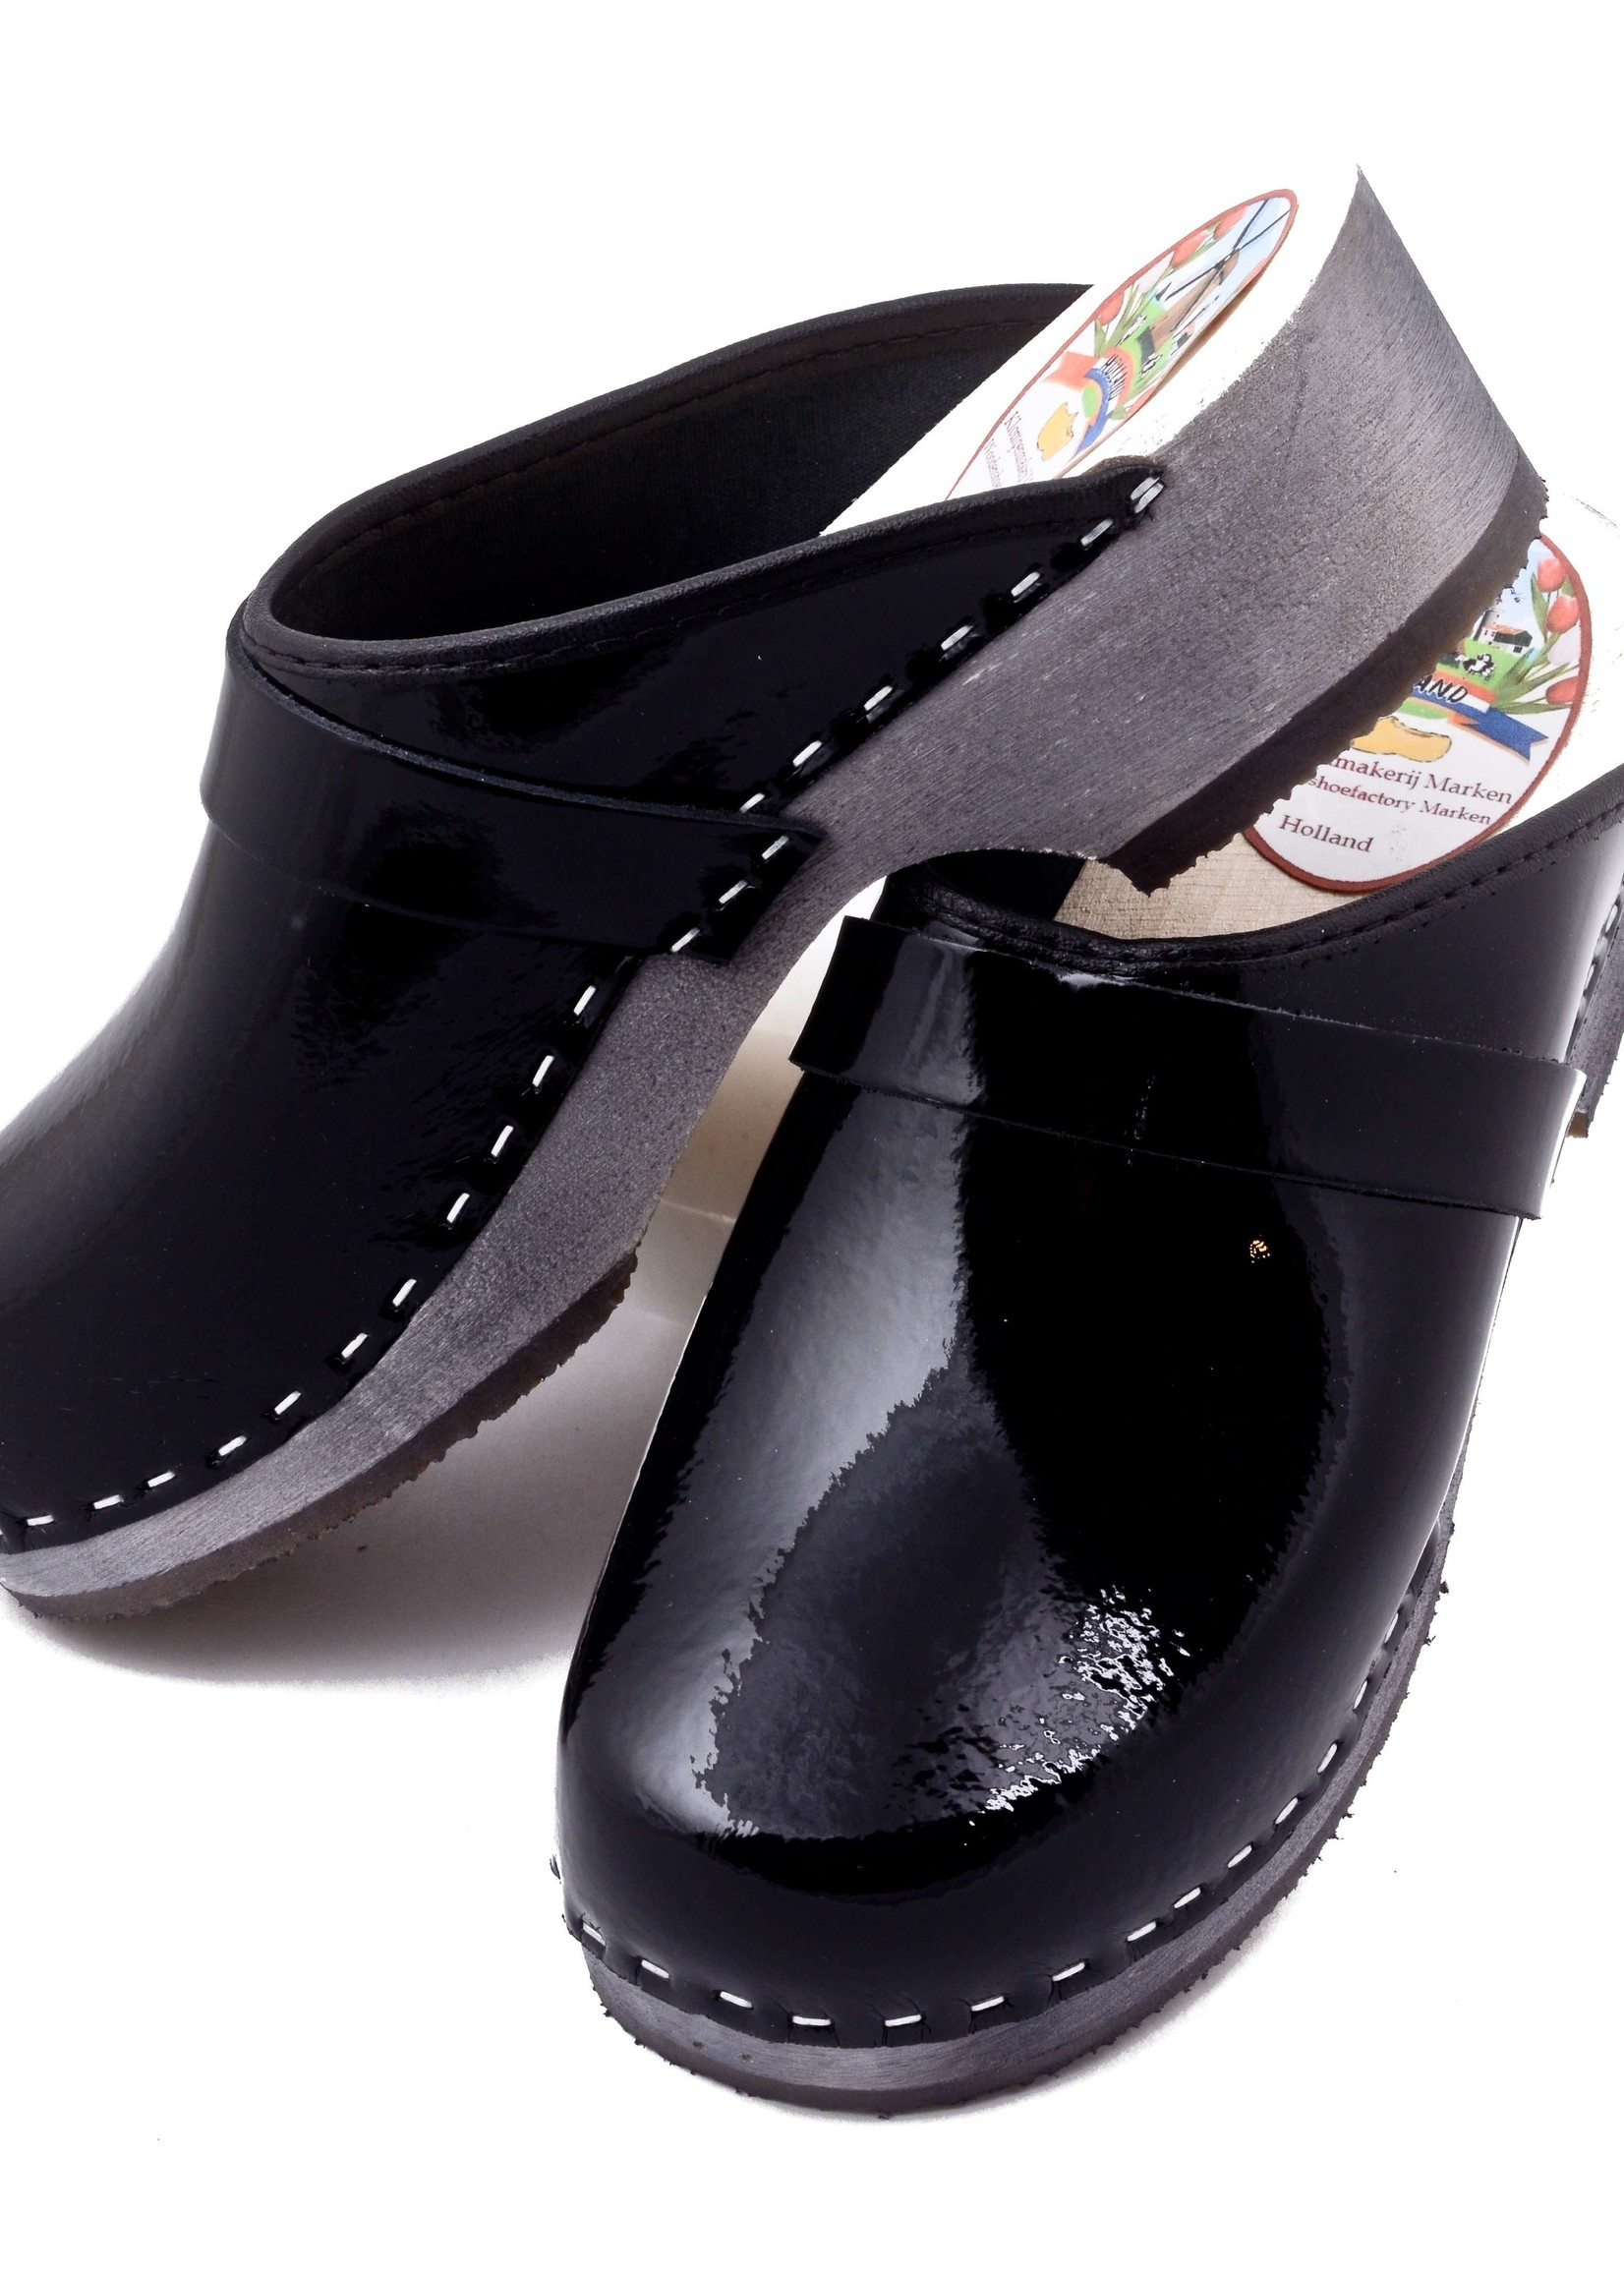 Simson Leather Clogs, Simson, Shiny Black, Orthepedic Footwear